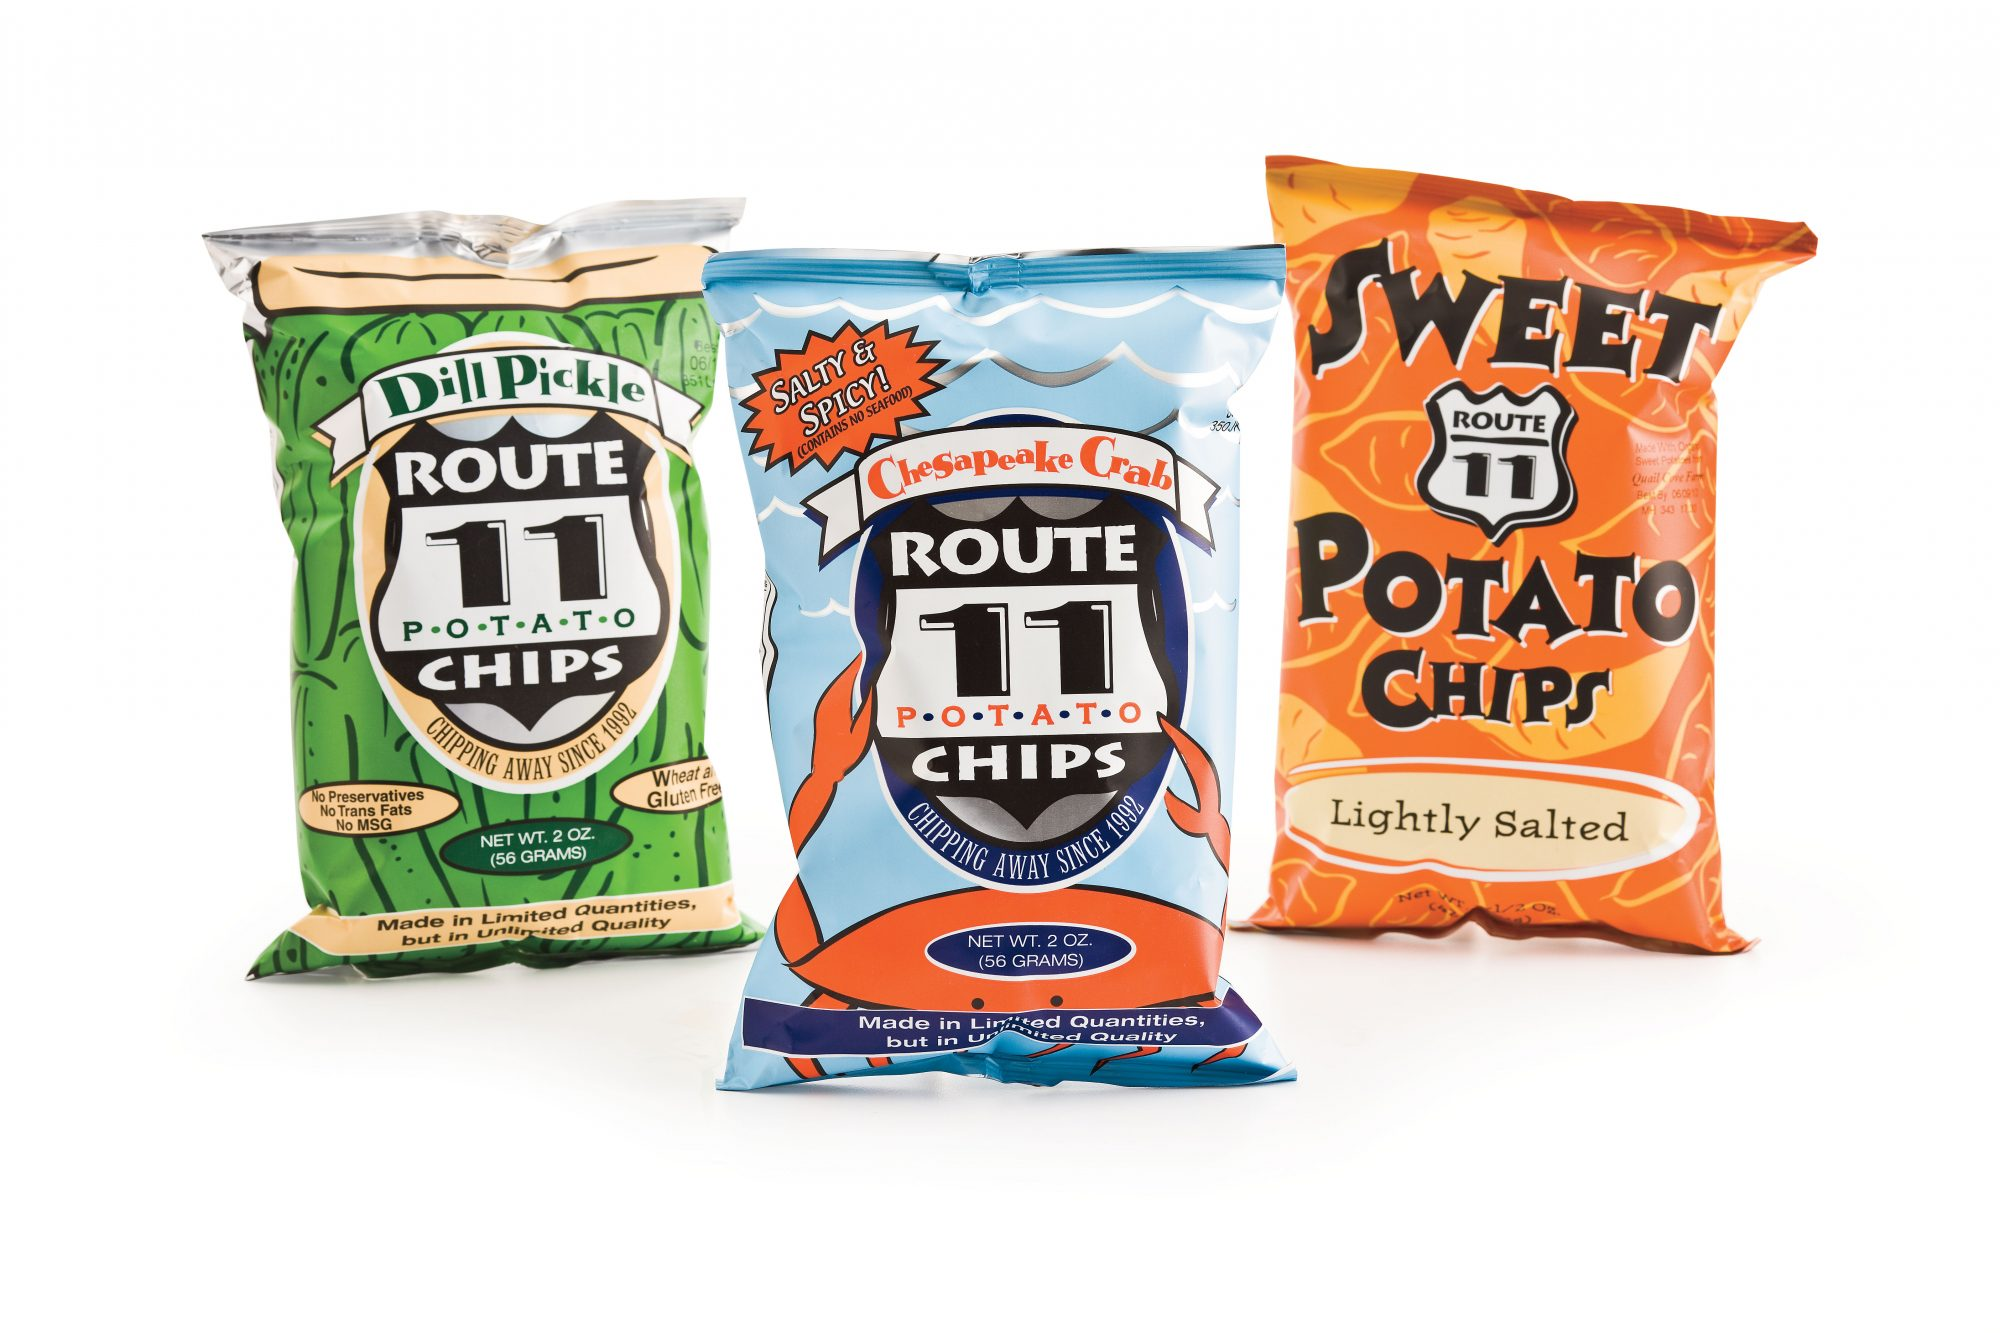 Route 11 Chips Road Trip Snack